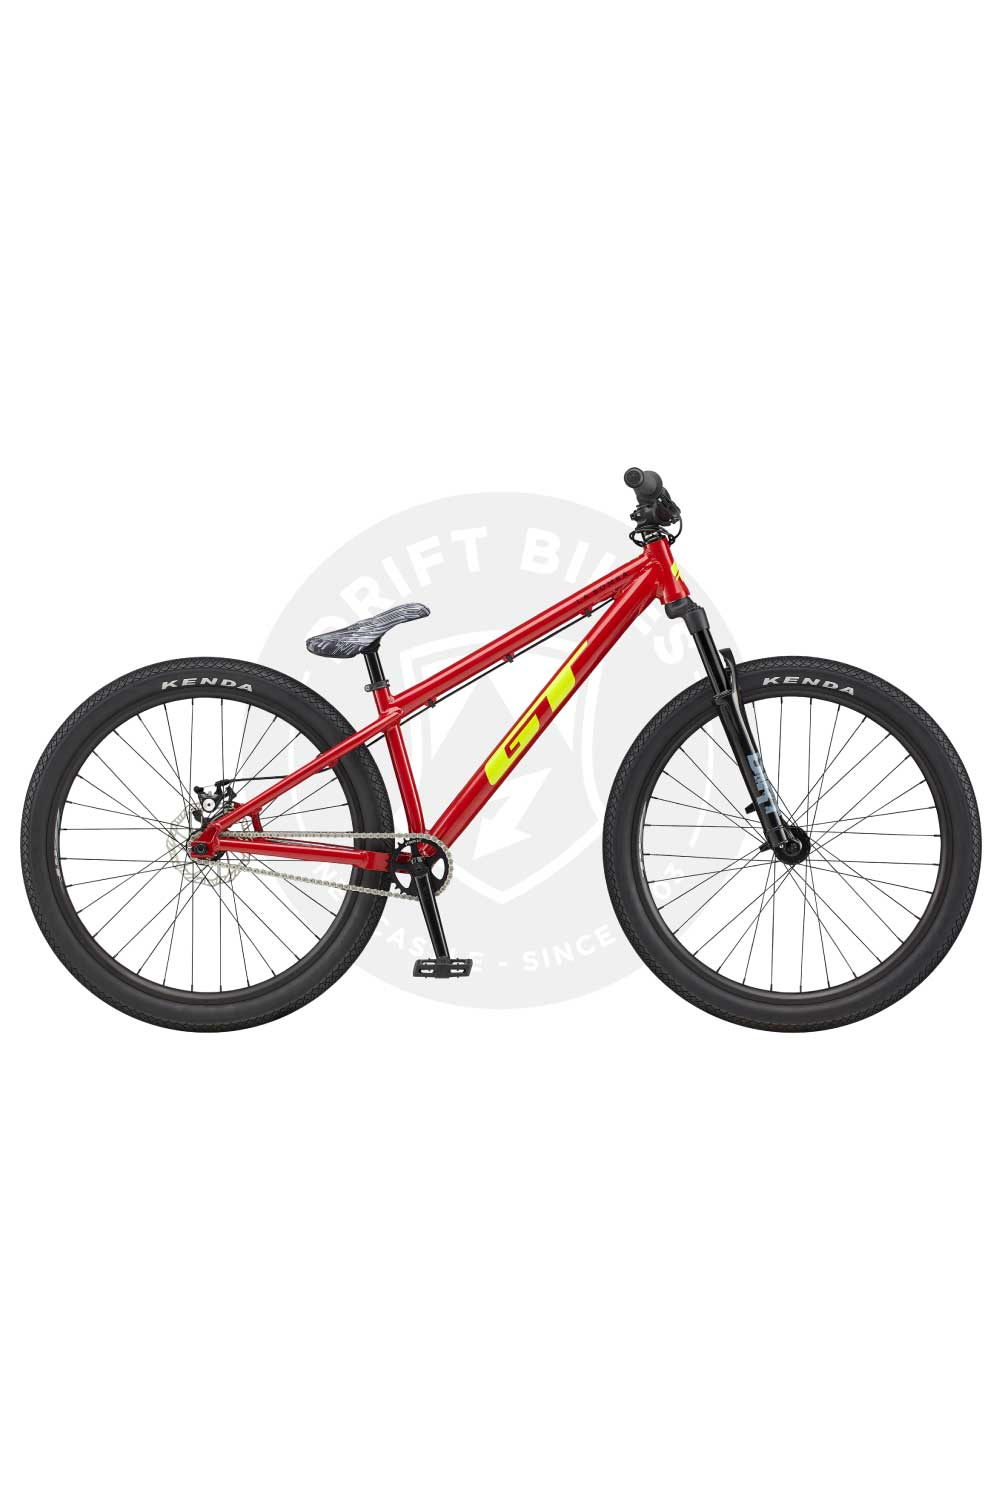 GT Bicycles 2021 Labomba 26 Gloss Mystic Red Mountain Bike